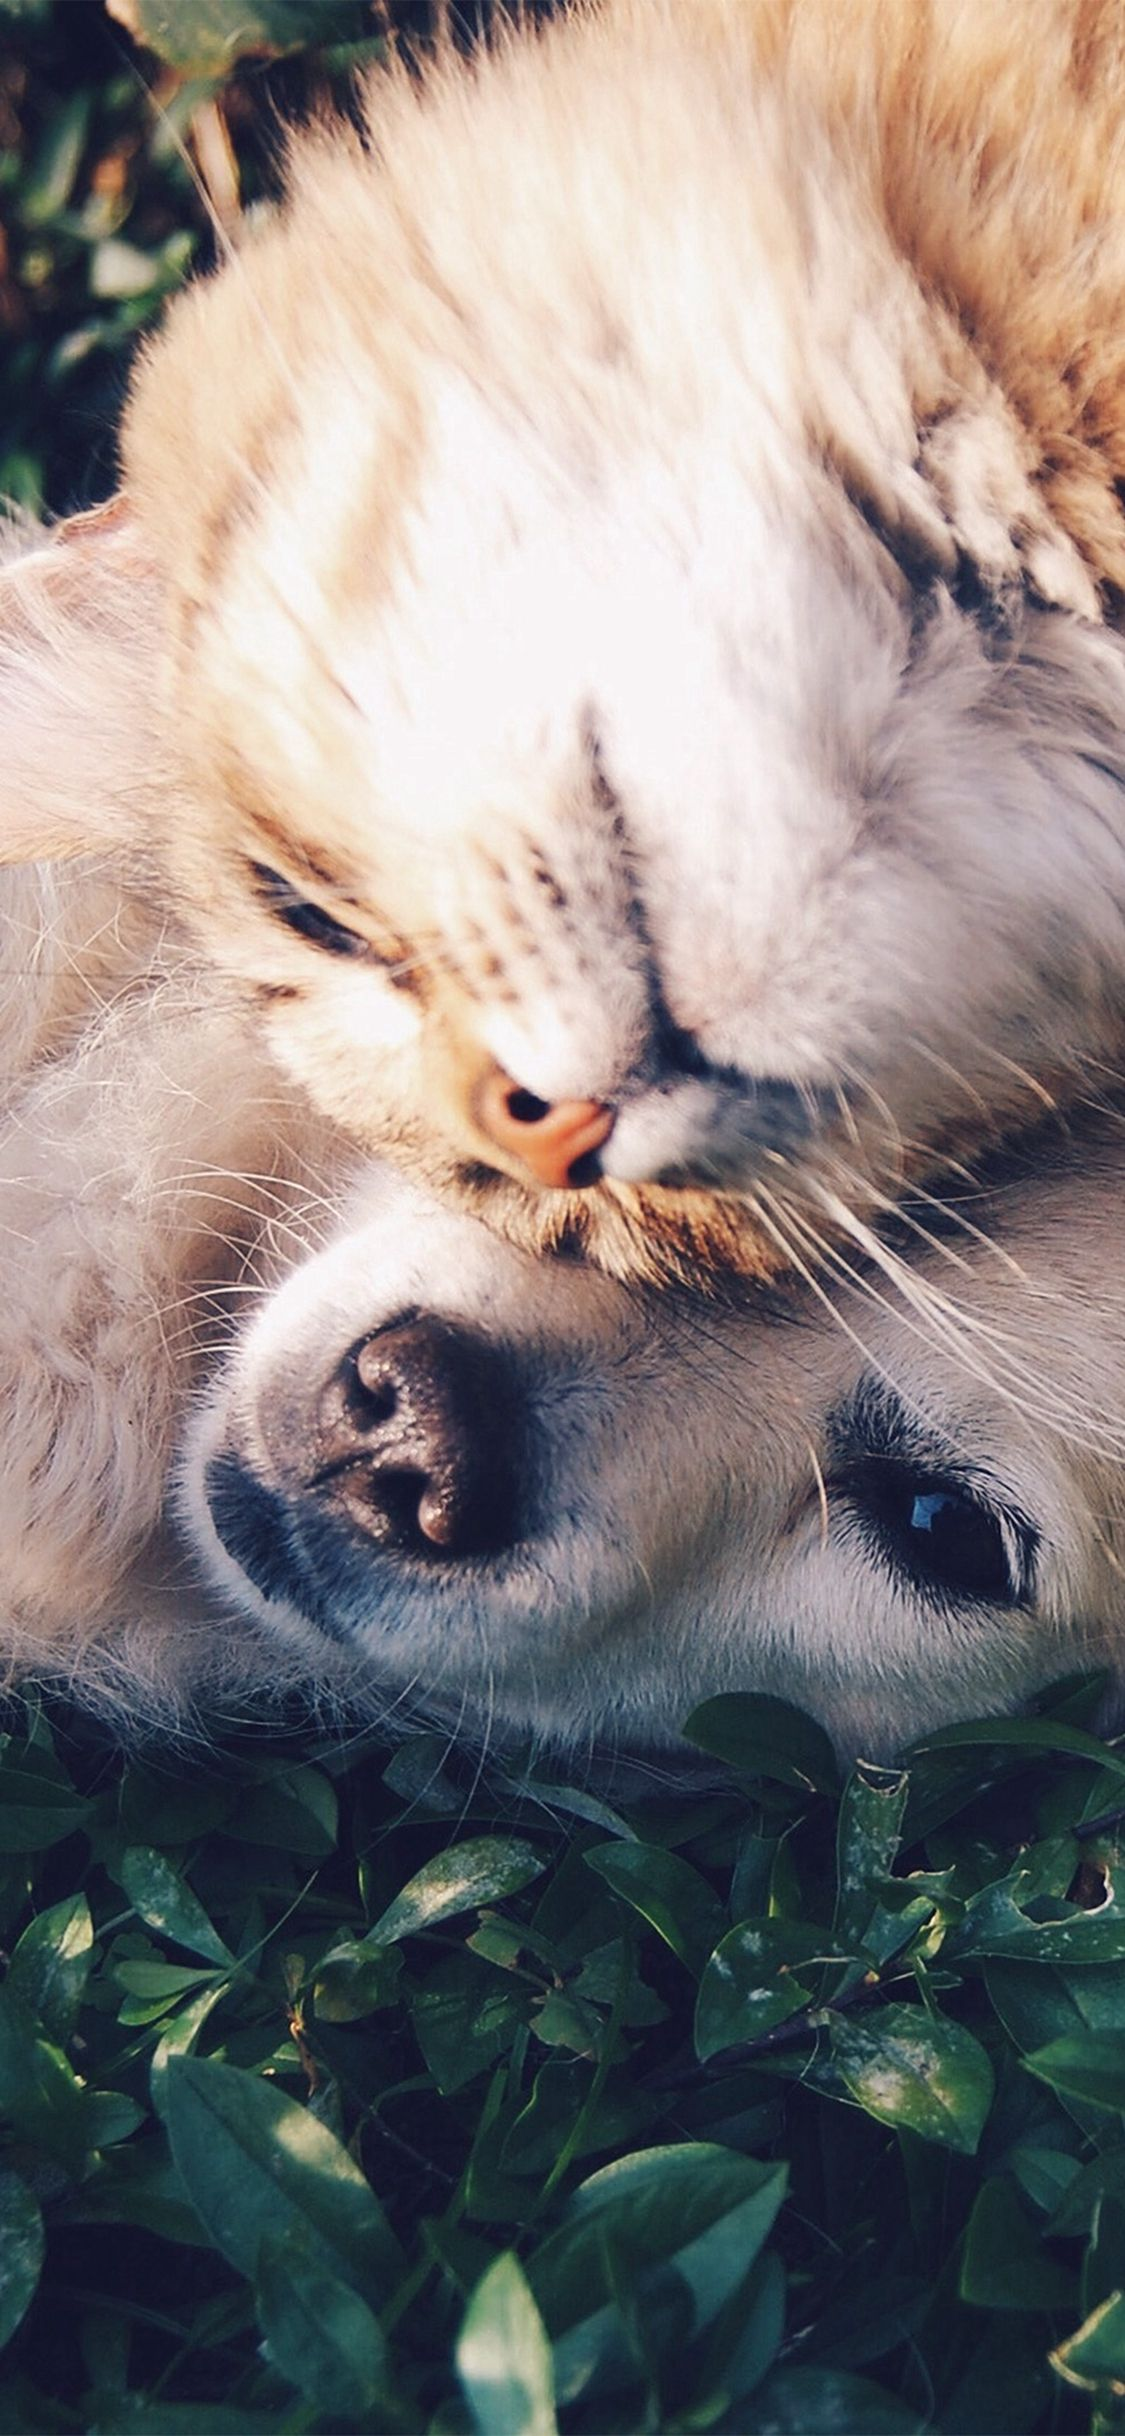 Cat And Dog Animal Love Nature Pure Iphone X Wallpapers Hayvan